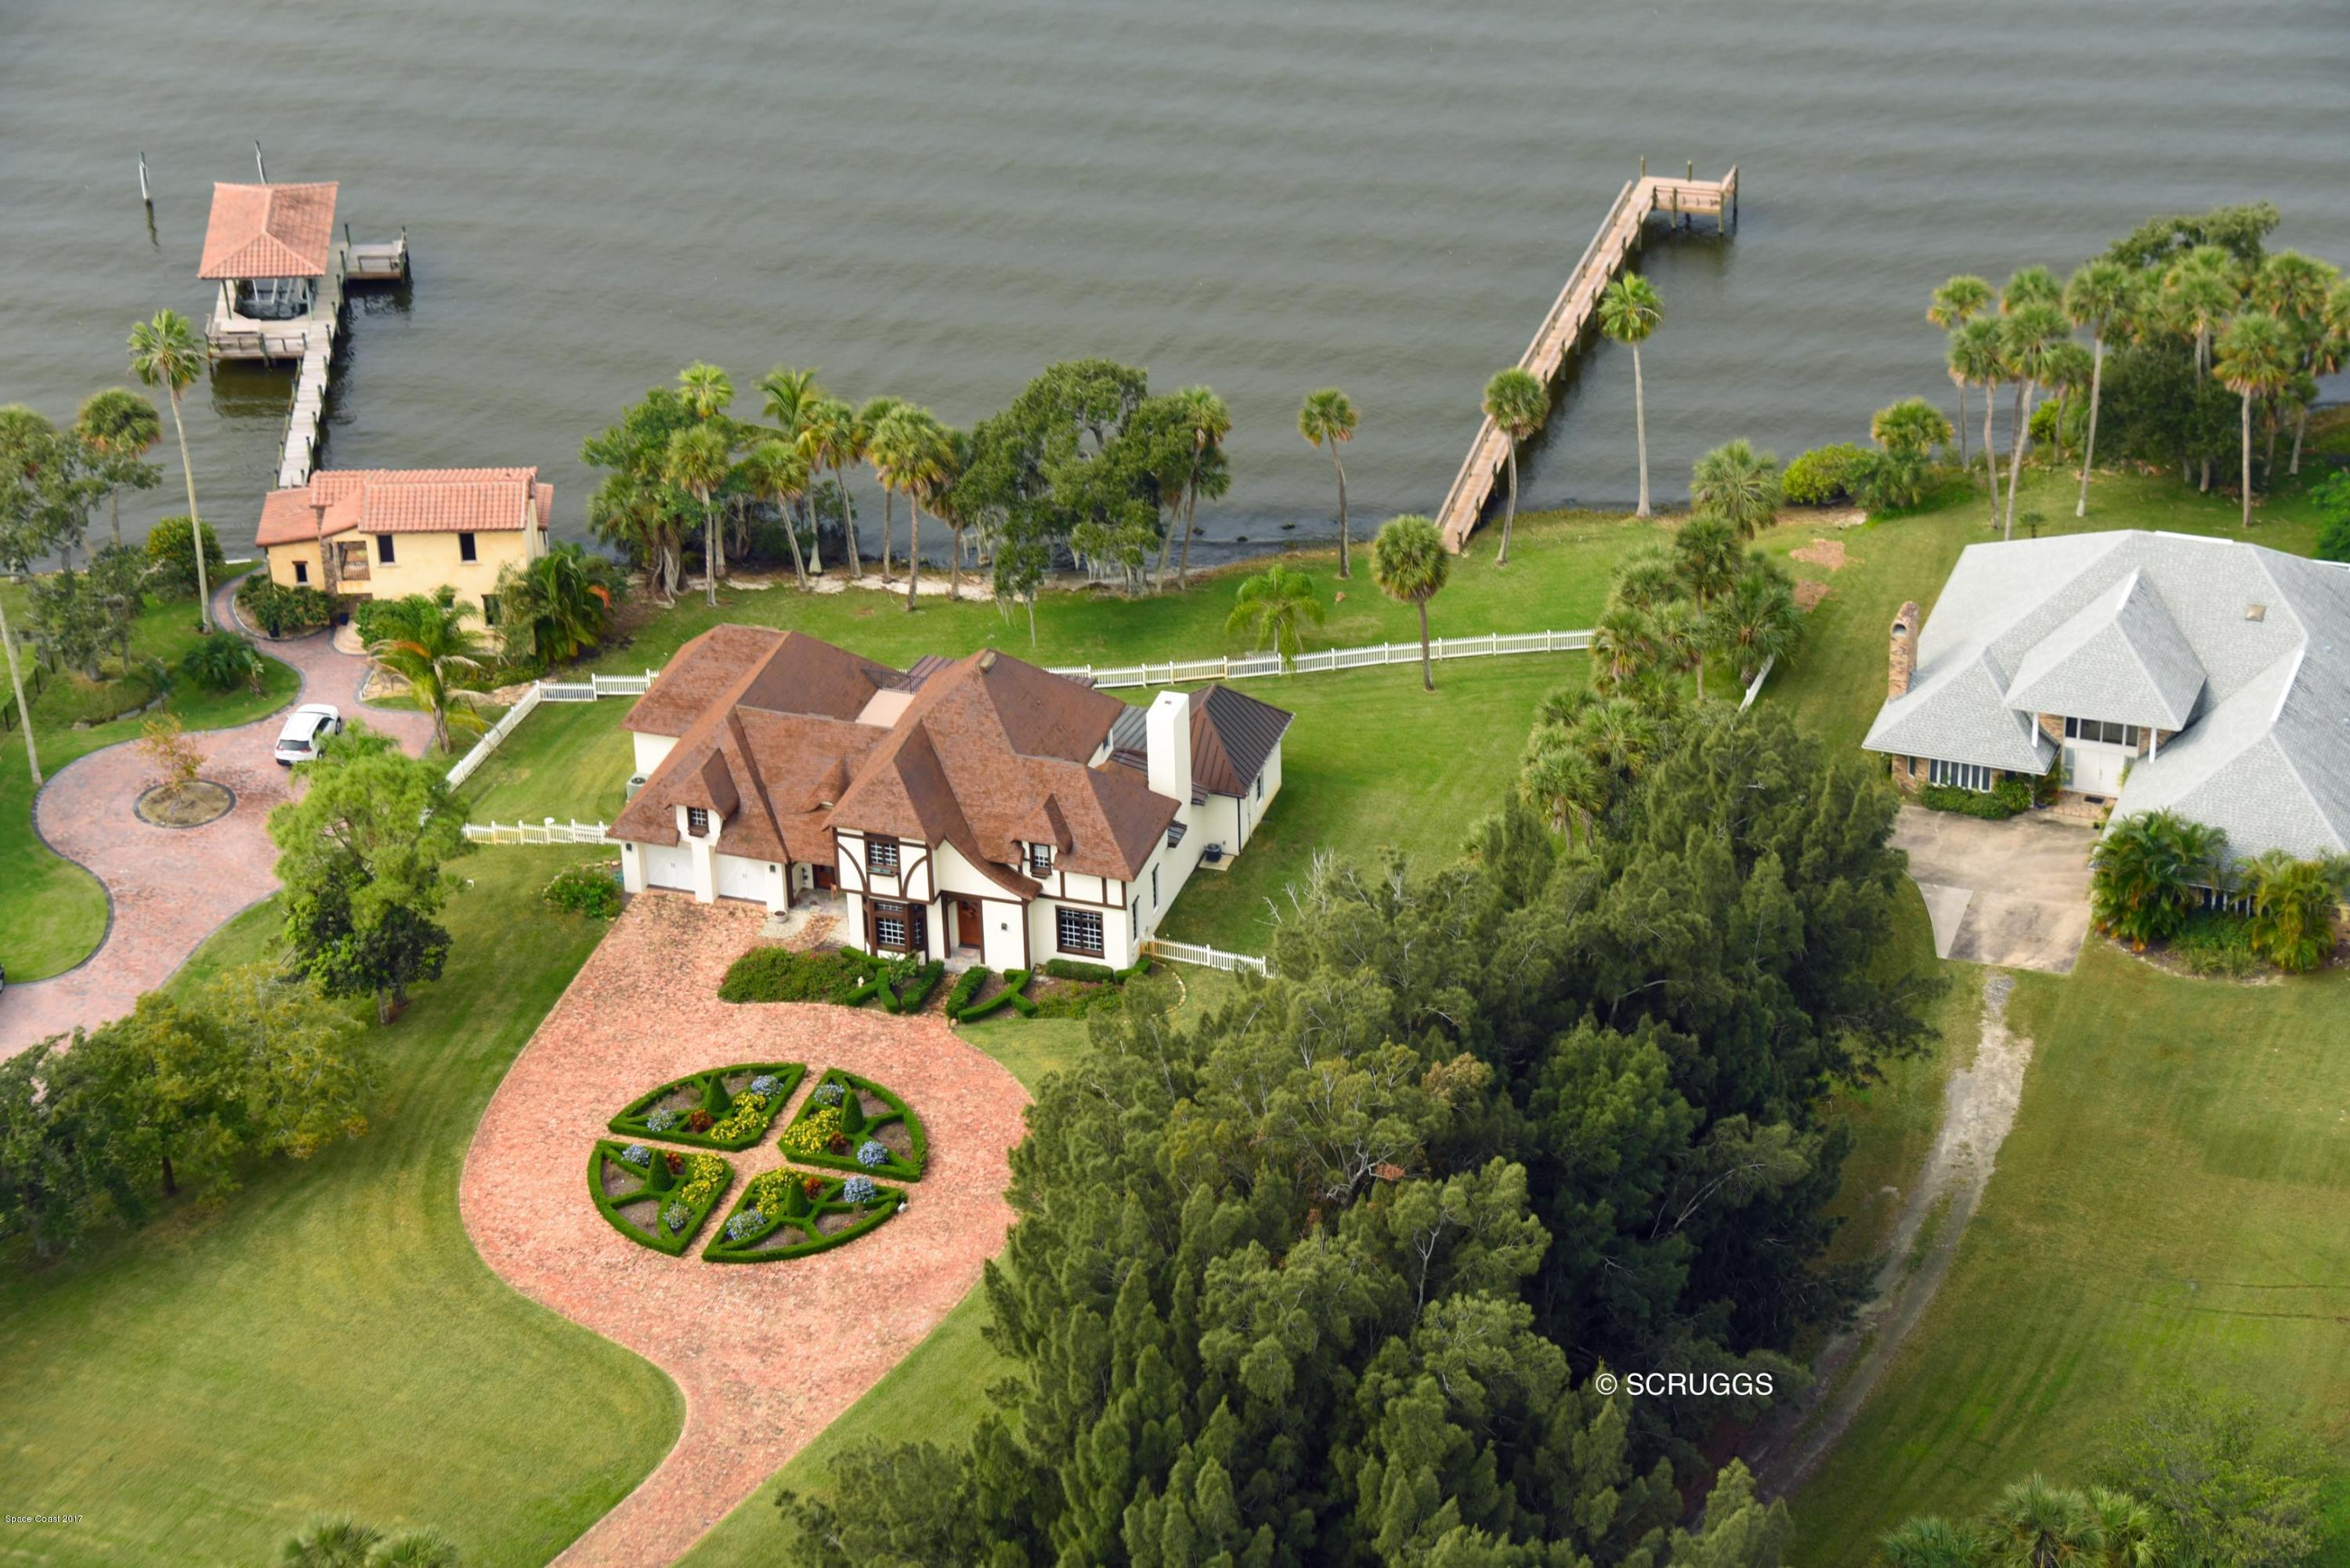 Single Family Homes for Sale at 7021 S Tropical Merritt Island, Florida 32952 United States